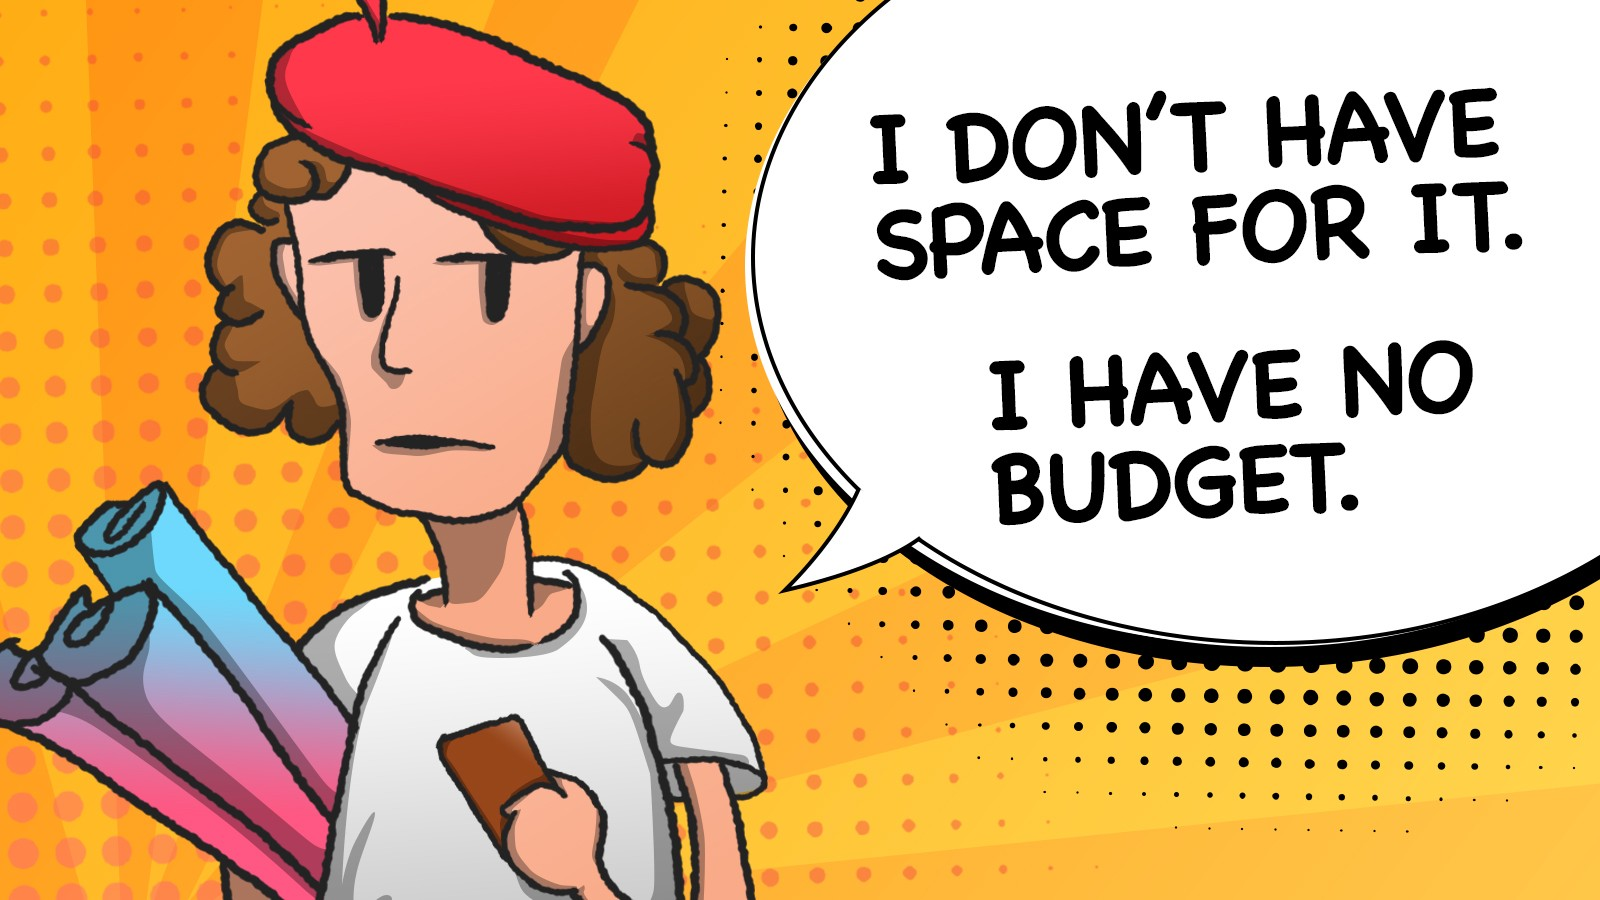 I DO'NT HAVE SPACE FOR IT. I HAVE NO BUDGET.